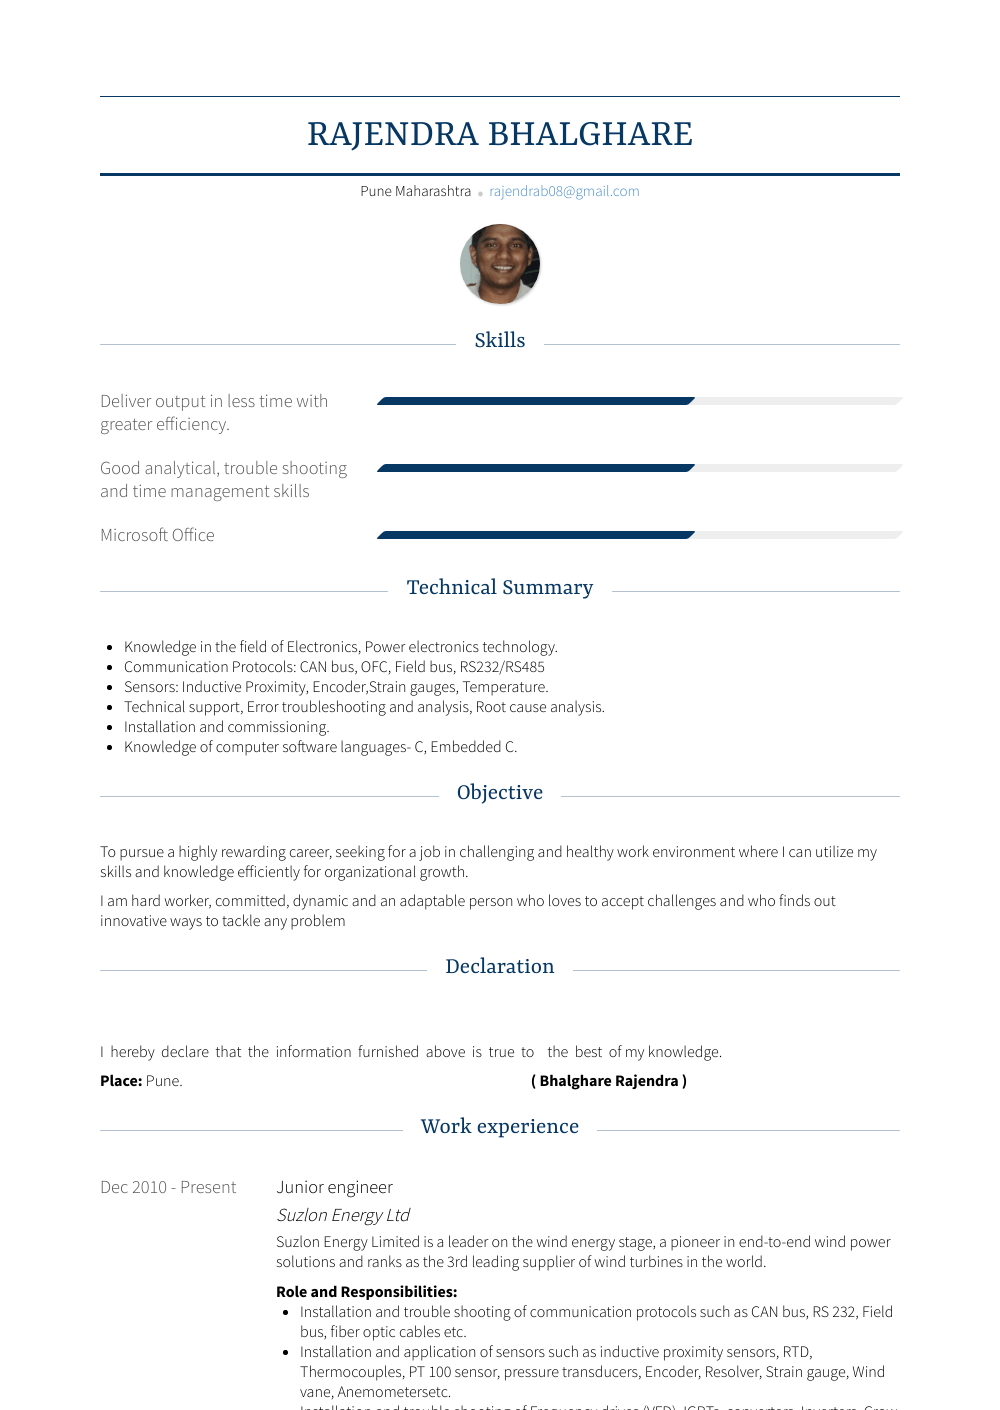 Junior Engineer Resume Sample and Template